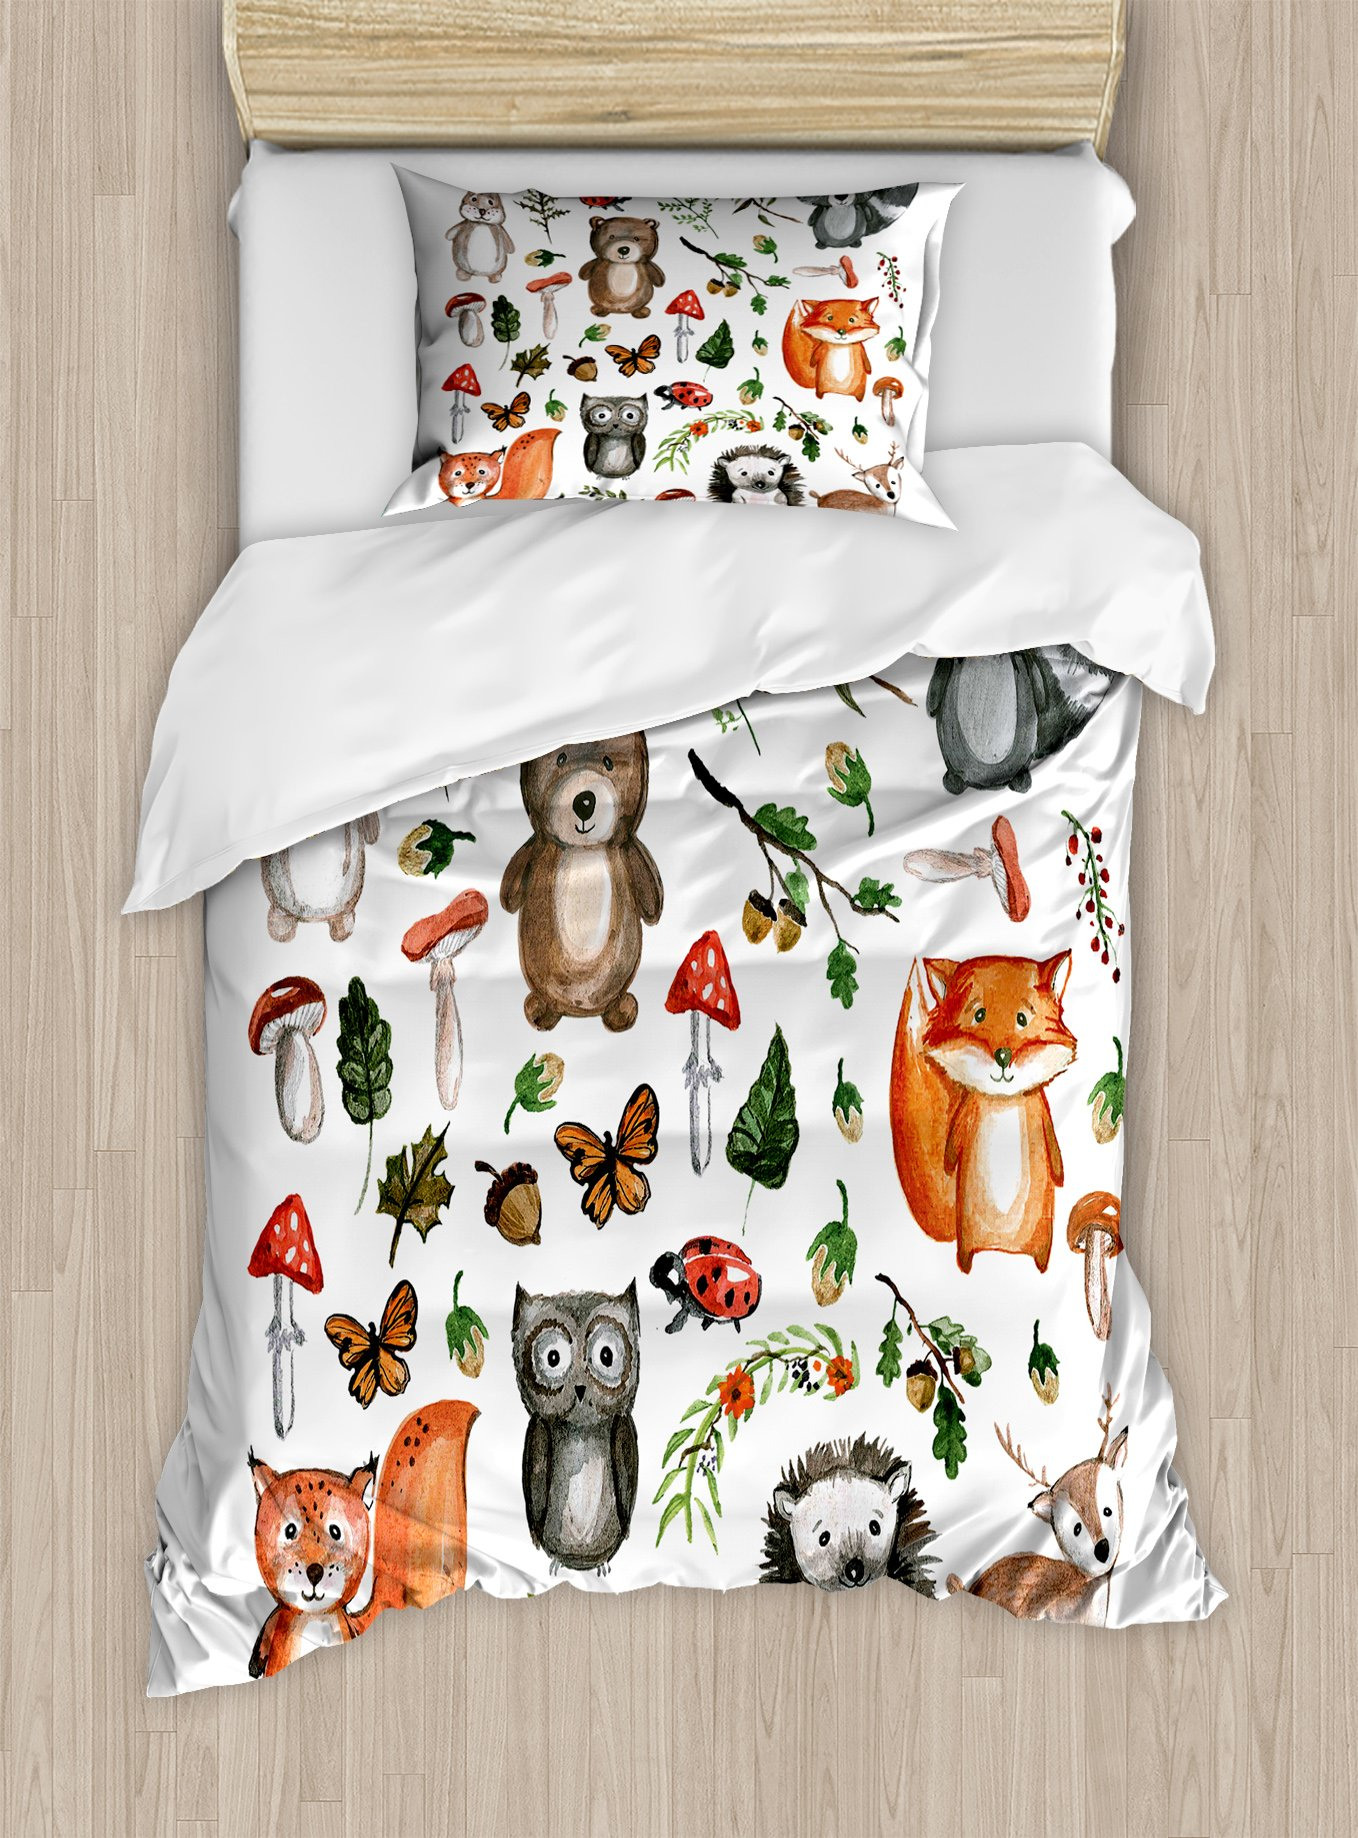 Lunarable Woodland Duvet Cover Set Twin Size, Watercolor Hand Drawn Forest Animals Illustration among Elements of the Woods, Decorative 2 Piece Bedding Set with 1 Pillow Sham, Multicolor